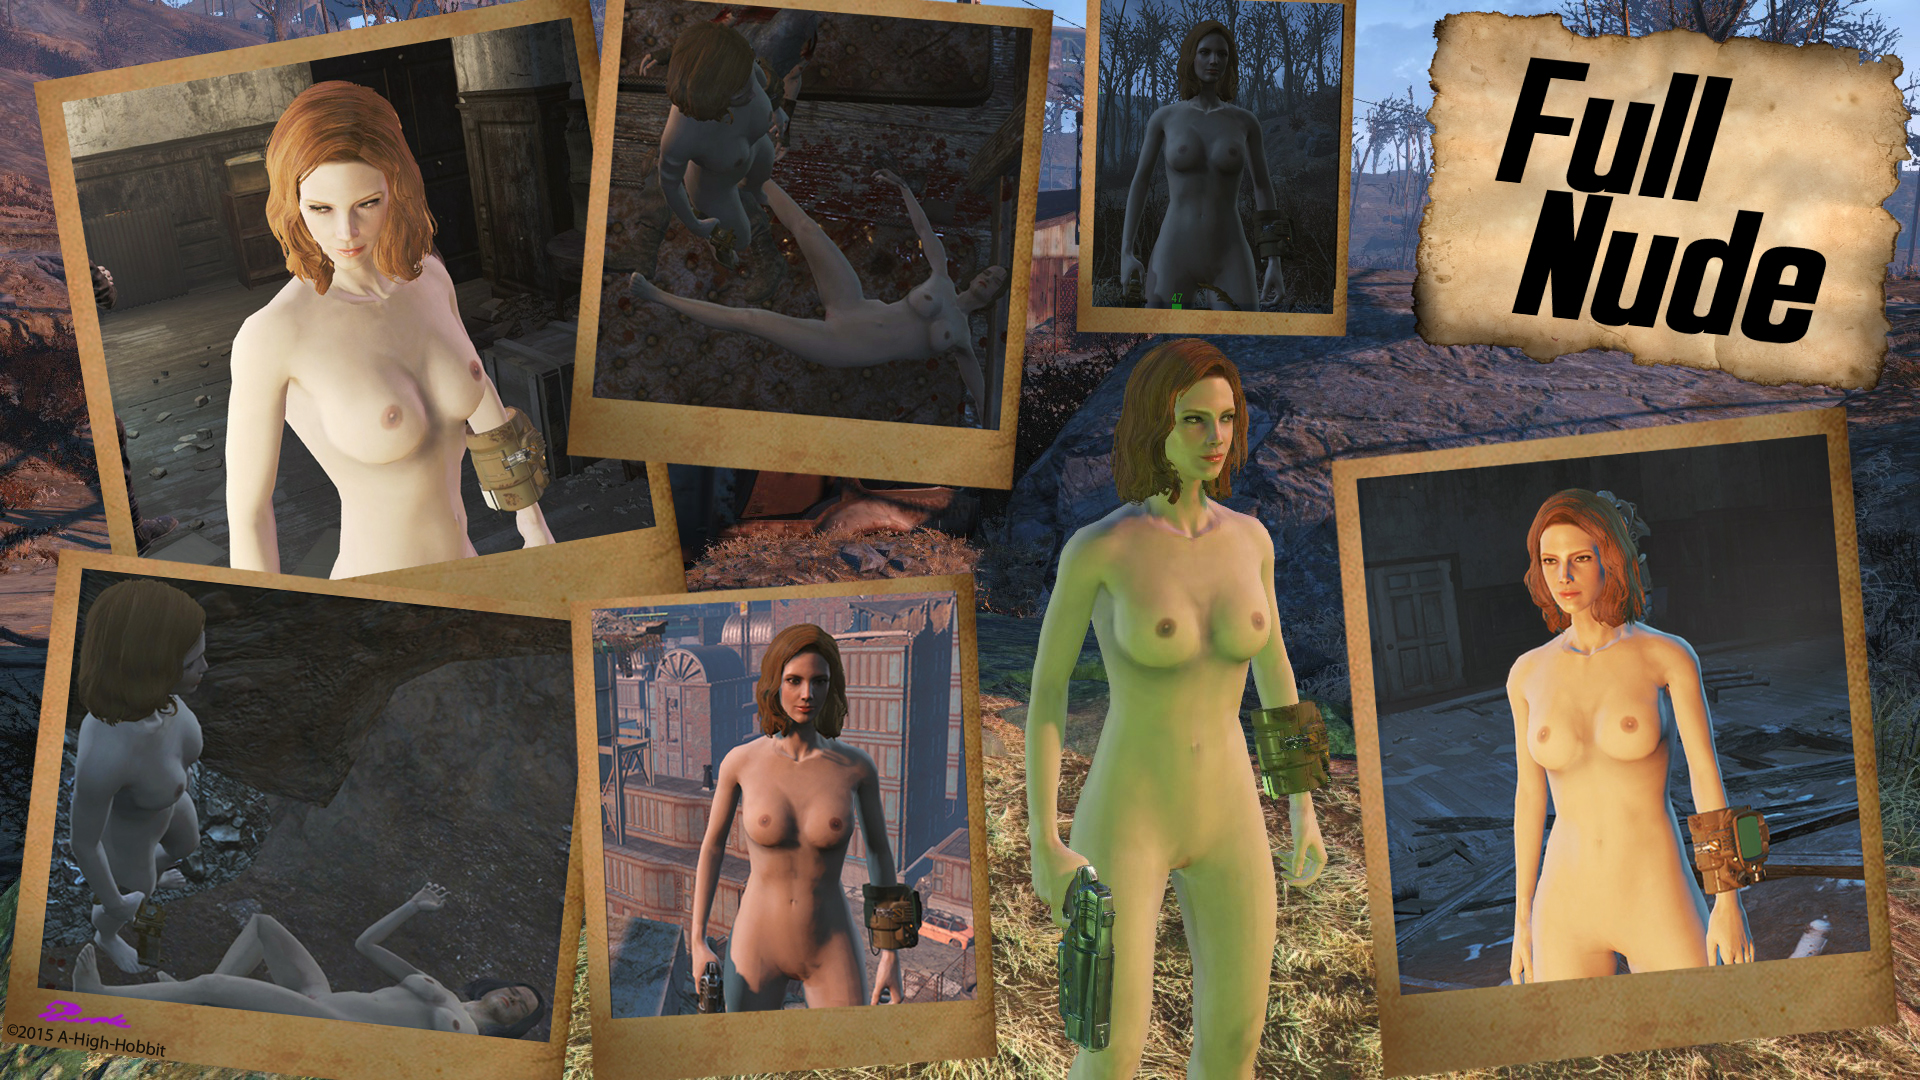 Fallout 3 360 nude mods sex photo